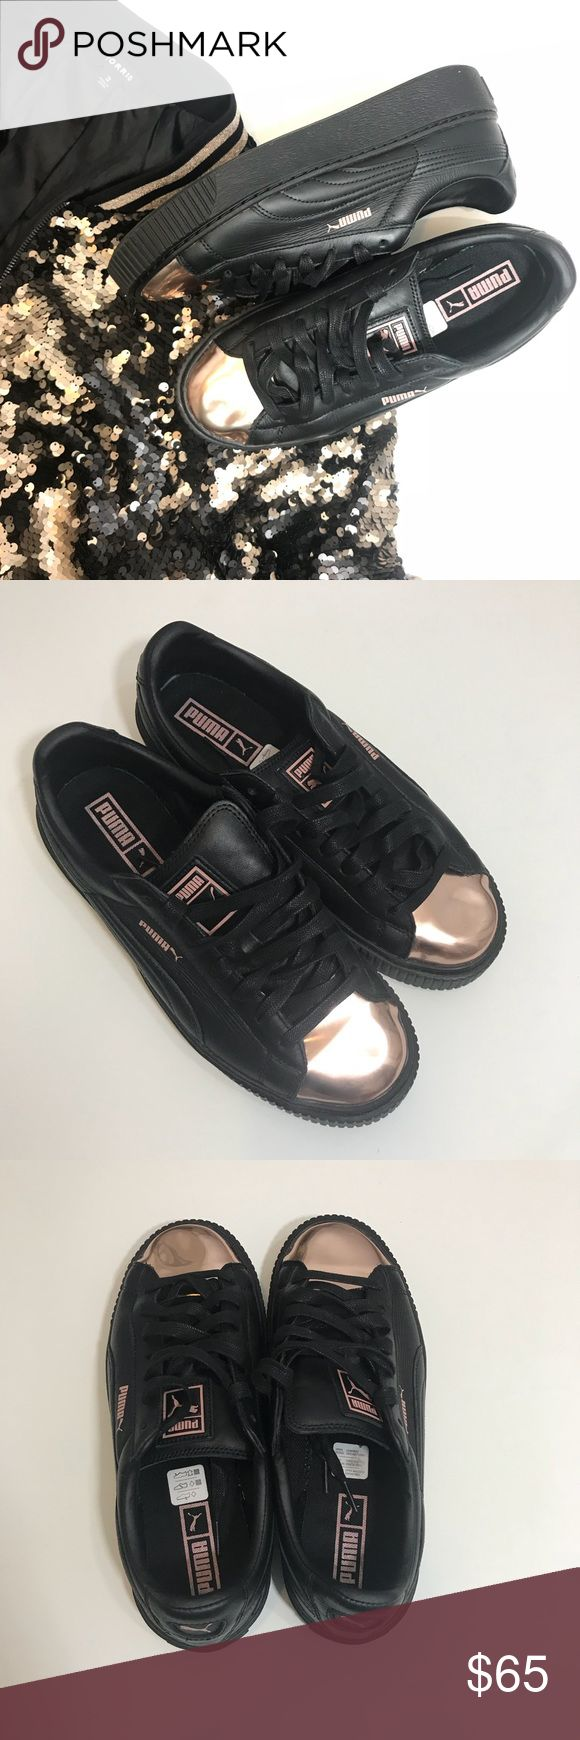 Puma Basket Metallic Shoes Rose Gold Black 10 Puma Women's Basket Platform Metallic Shoes Sneakers Rose Gold Black. Leather upper; Faux Rose Gold overlay at toebed Lace closure for a snug fit Platform rubber outsole with ridged tooling at toe PUMA Formstrip PUMA Basket callout at lateral side PUMA Logo Label at tongue very little signs of wear. Size 10 Woman Puma Shoes Sneakers